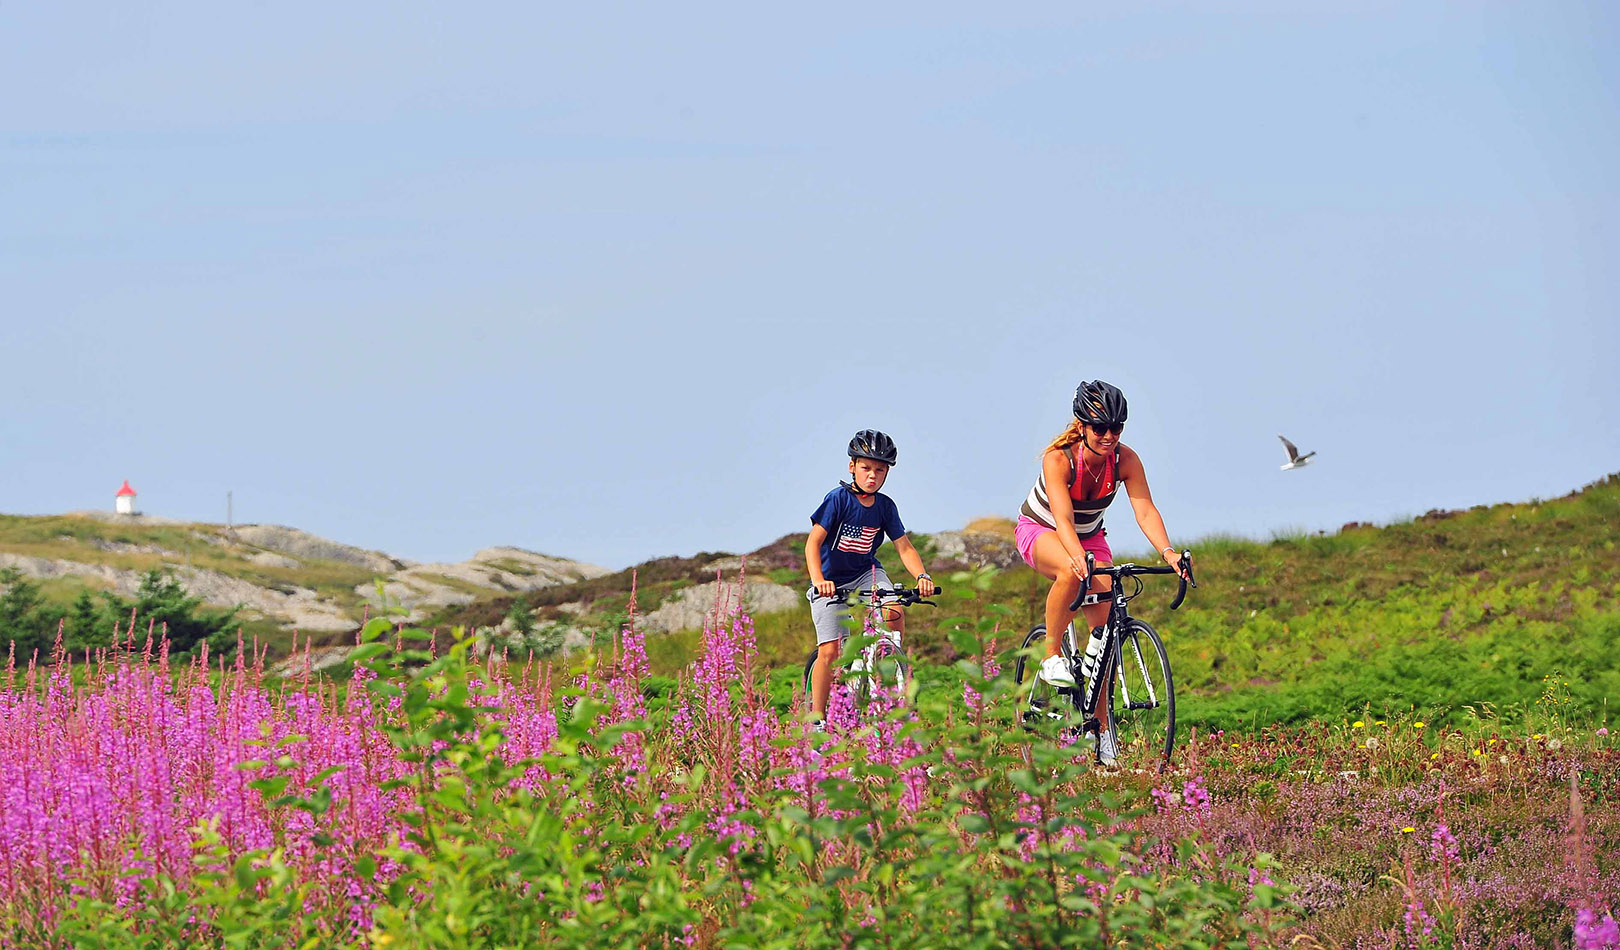 Cyclists among flowers and hills.